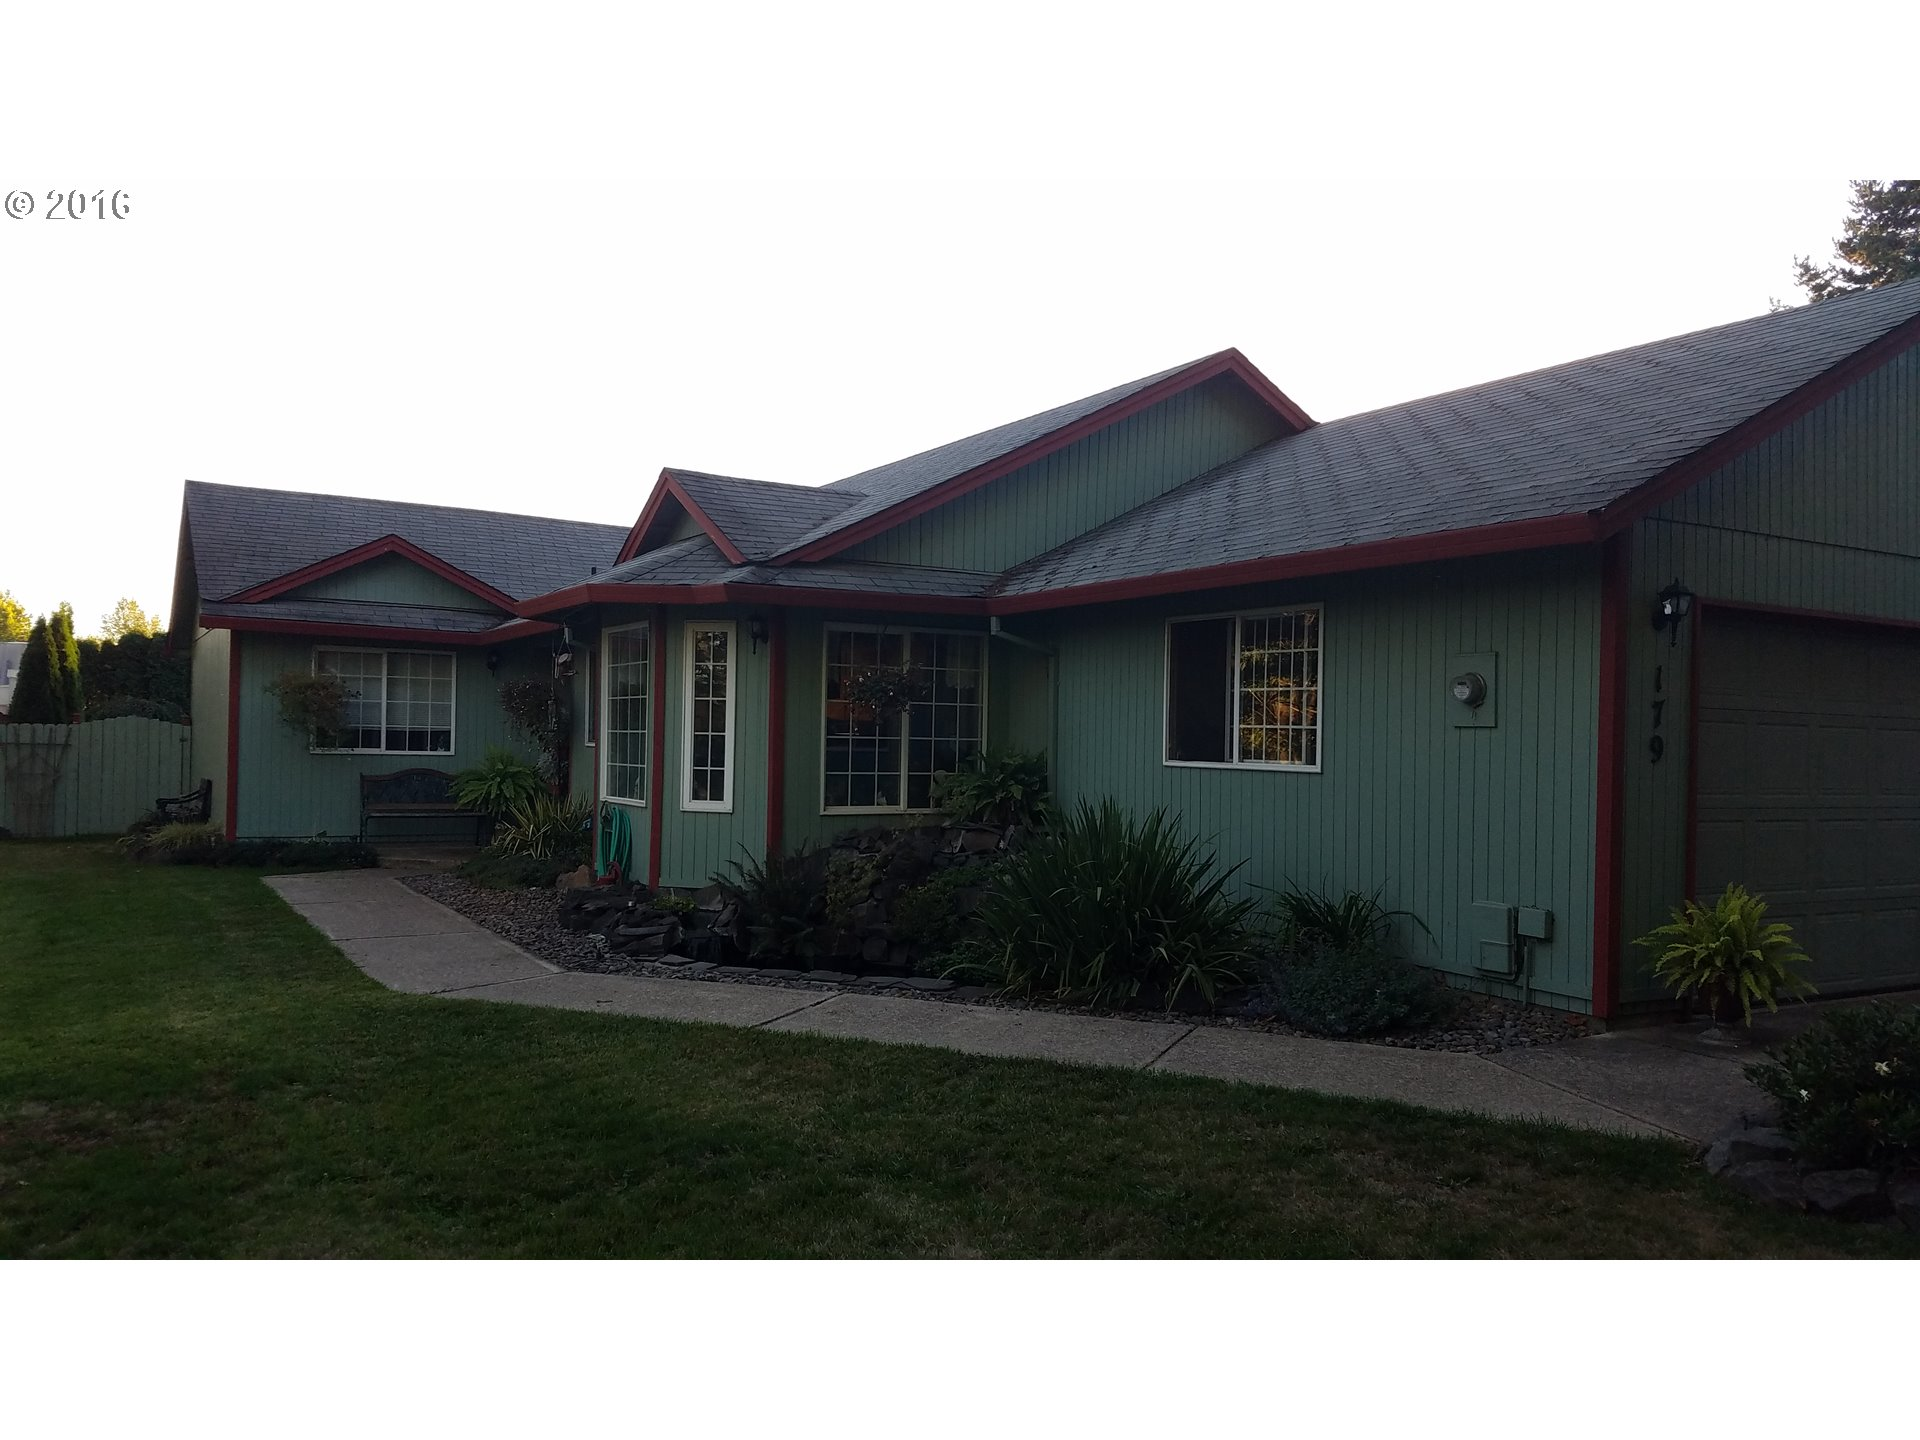 179 SW 3RD ST, Dundee, OR 97115